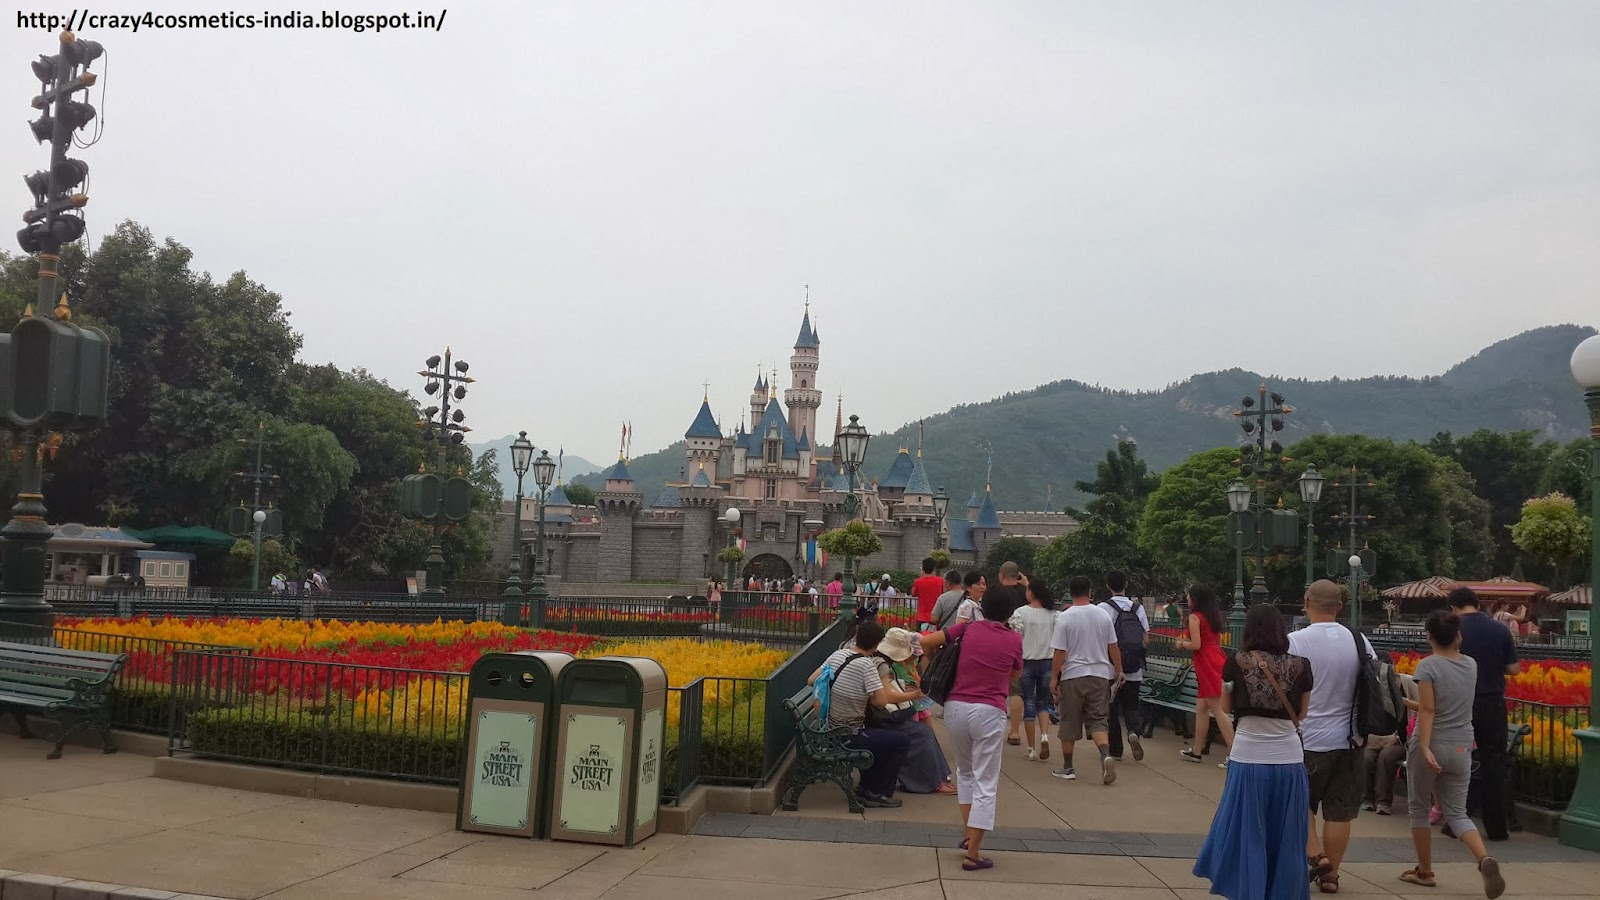 Hongkong Disneyland Travel Blog-Hongkong Disneyland Travel Tips-Hongkong Disneyland Hotel